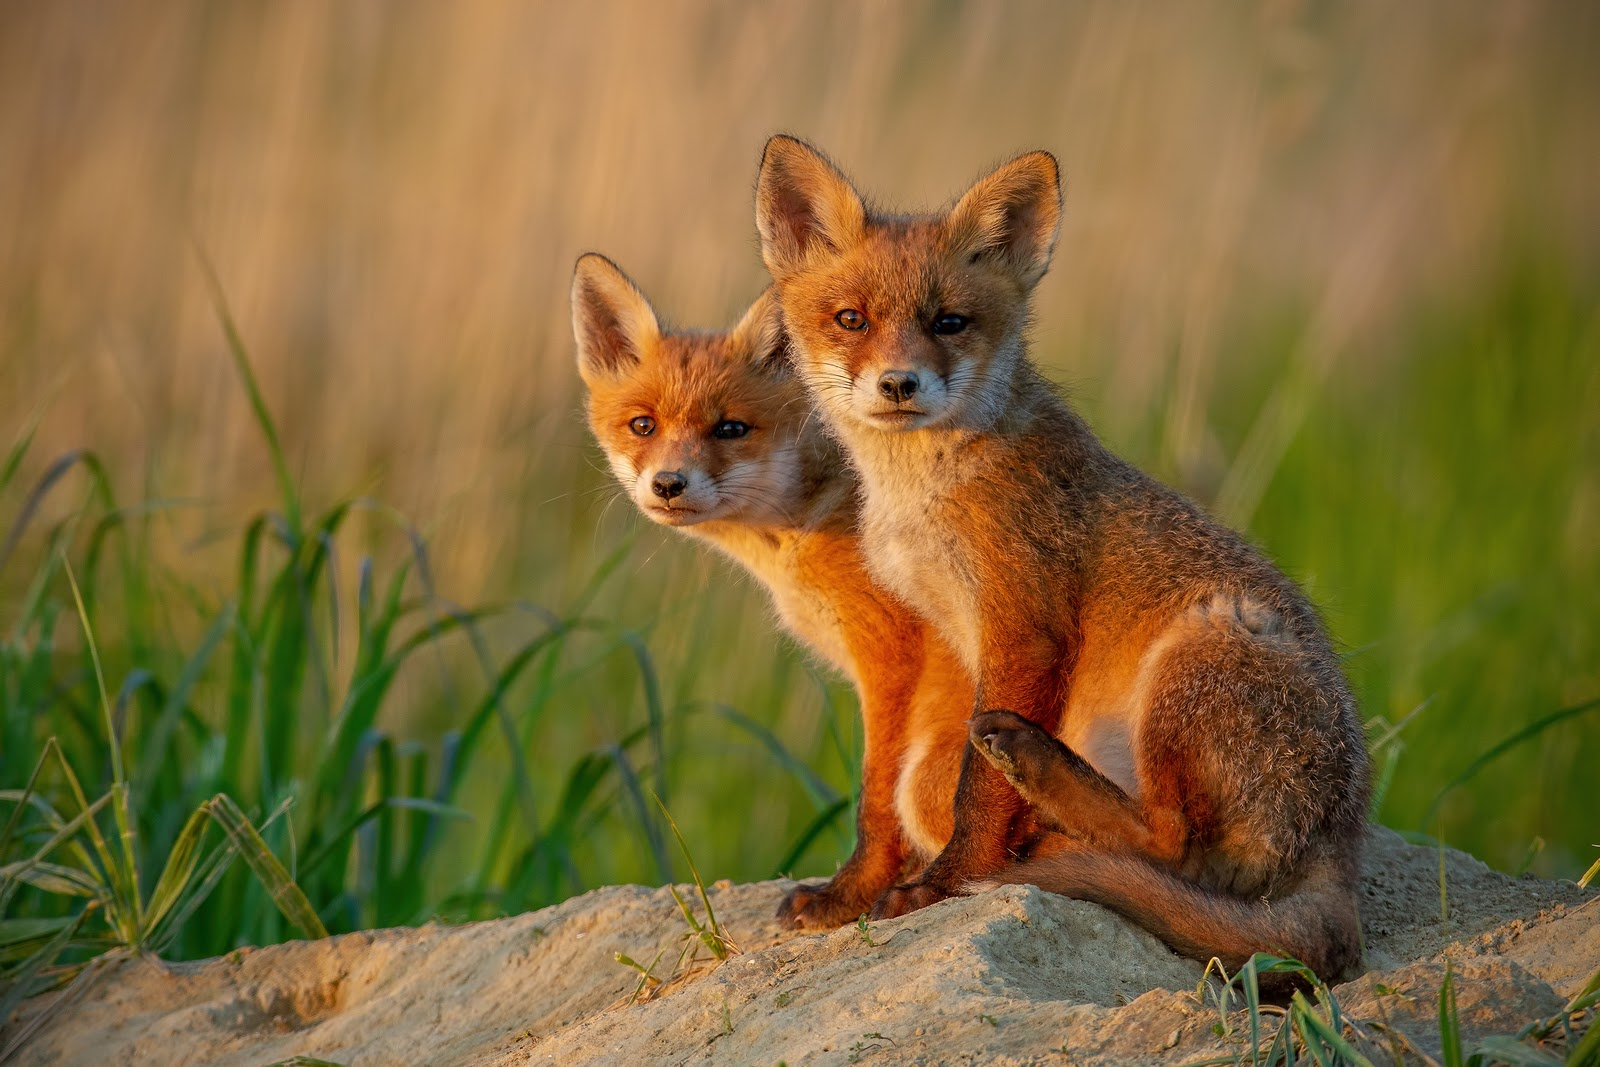 Red foxes, piping plovers battle for survival along N.J. coast - WHYY